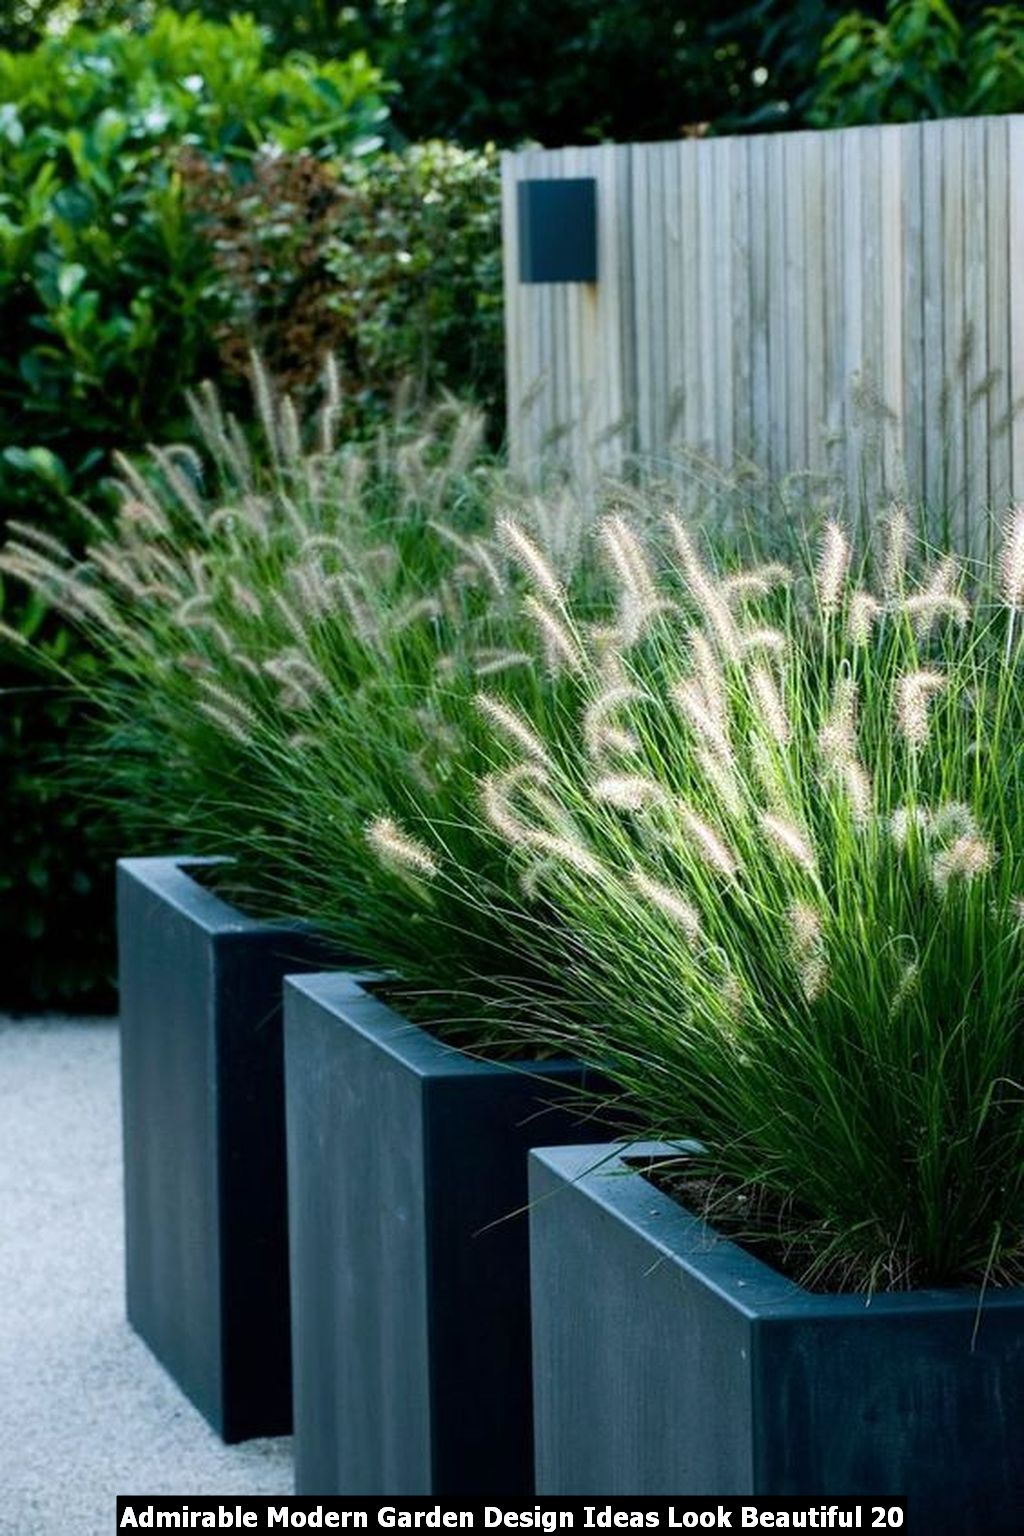 Admirable Modern Garden Design Ideas Look Beautiful 20